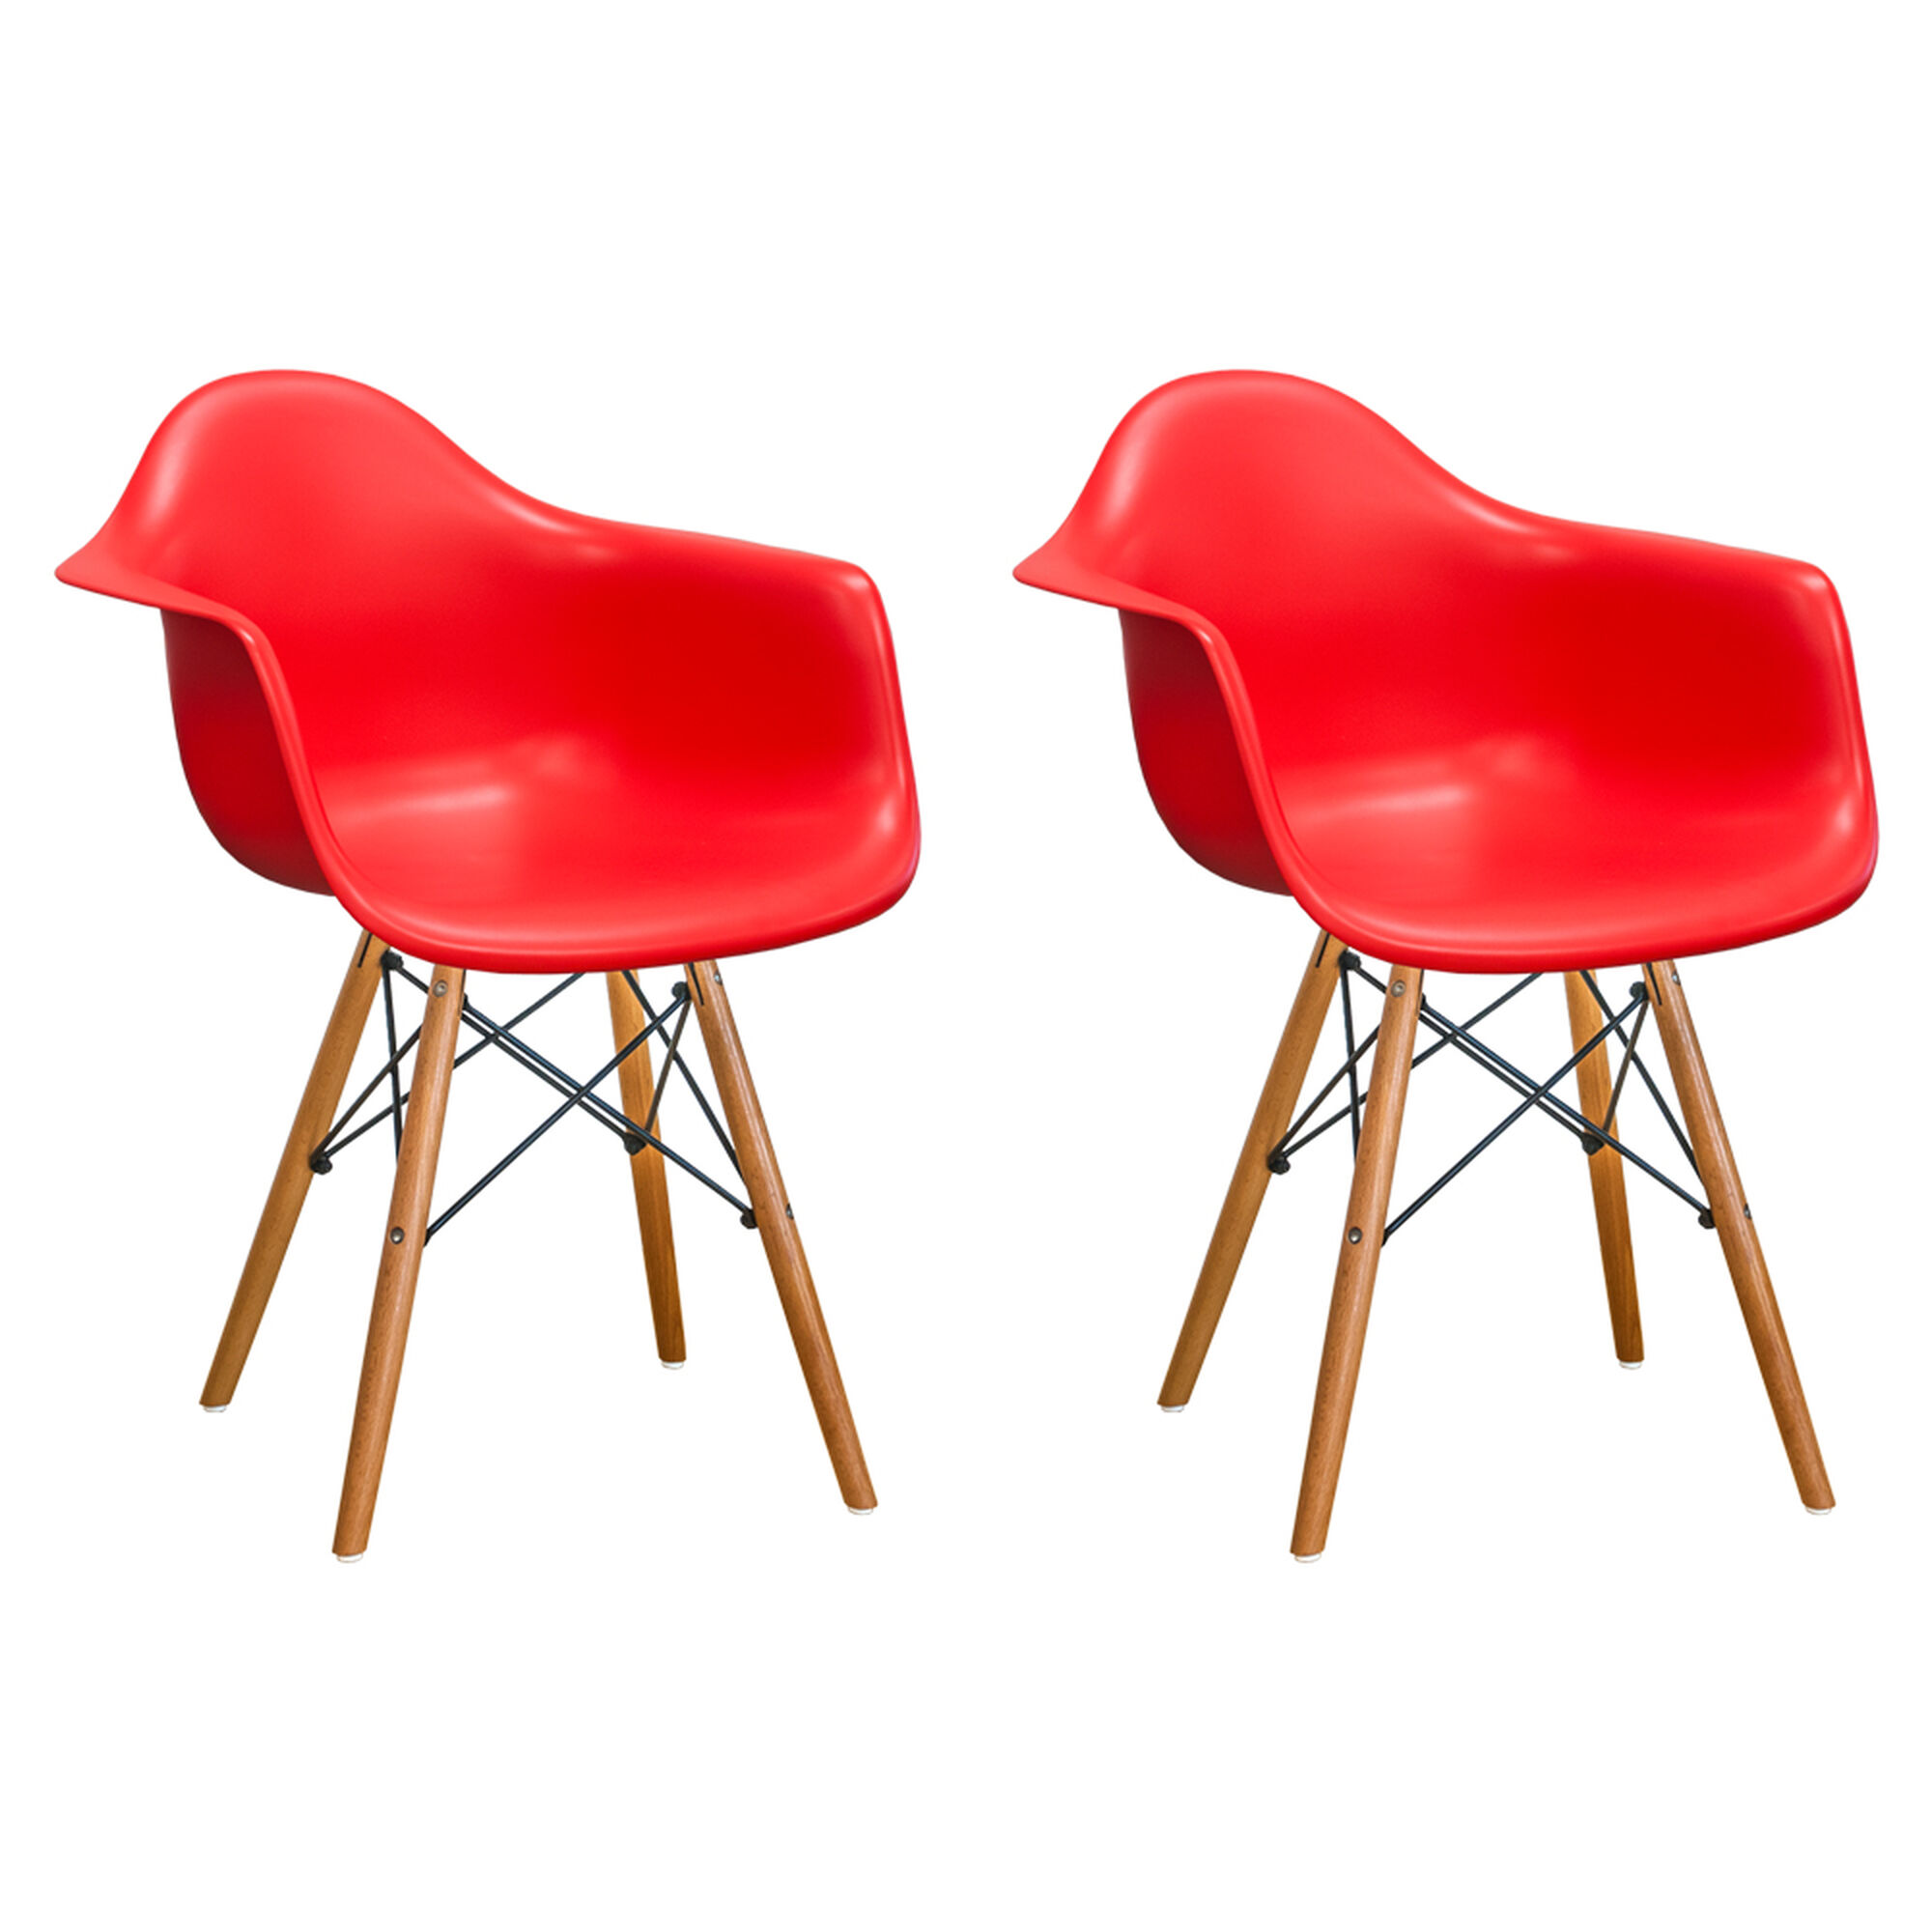 Mod Made Paris Tower Arm Chair With Wood Legs And Red Seat